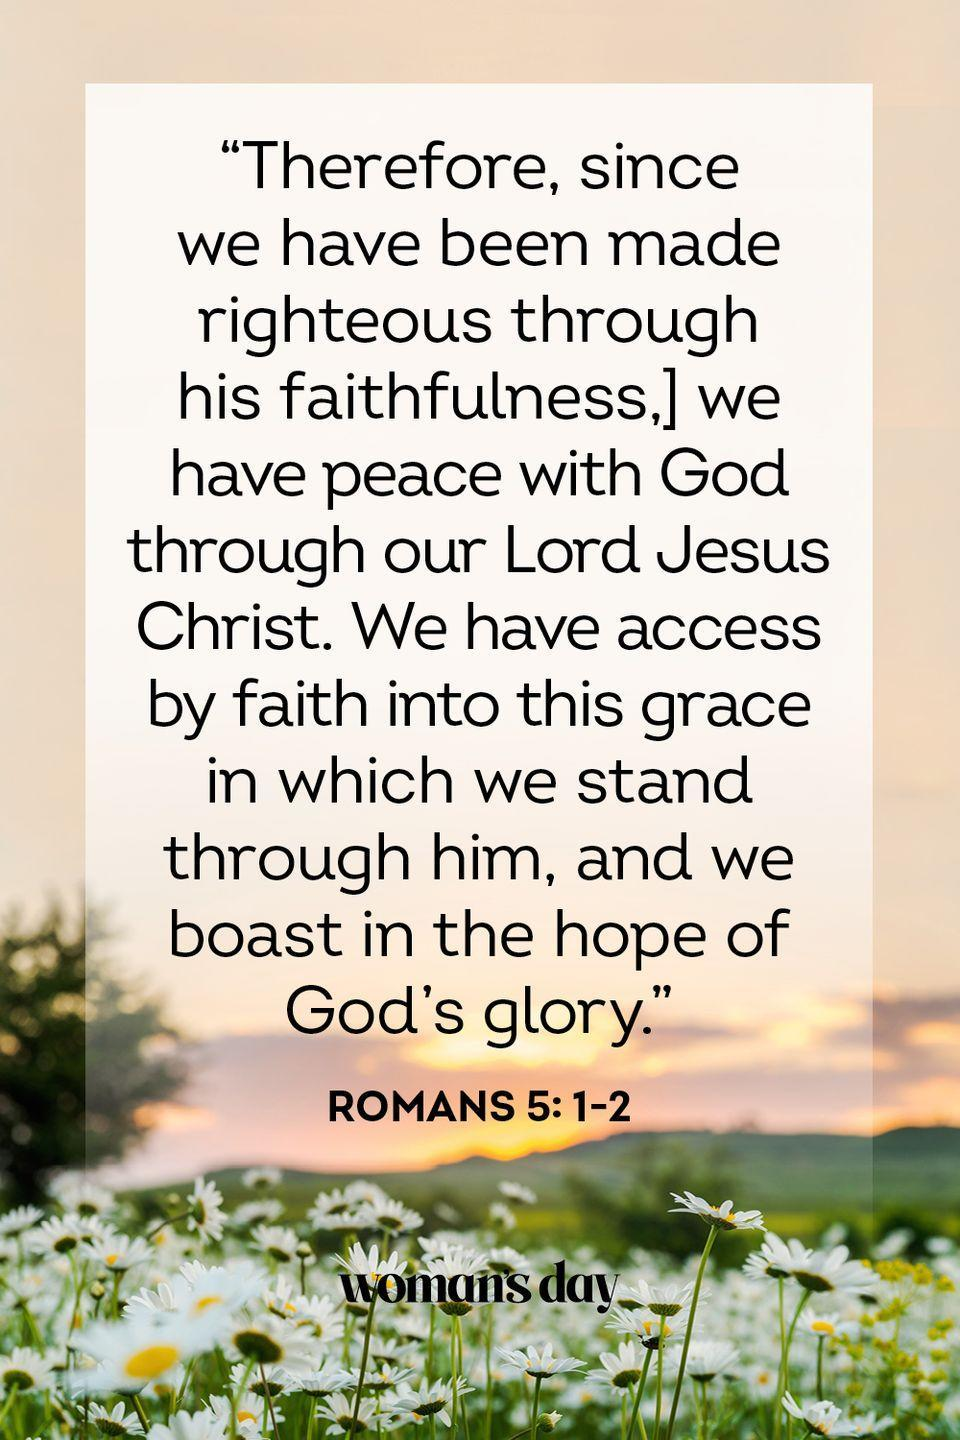 """<p>""""Therefore, since we have been made righteous through his faithfulness, we have peace with God through our Lord Jesus Christ. We have access by faith into this grace in which we stand through him, and we boast in the hope of God's glory."""" — Romans 5: 1-2</p><p><strong>The Good News: </strong>The Messiah you worship, foretold by the ancient scripture, ever and always desires peace for everyone.</p>"""